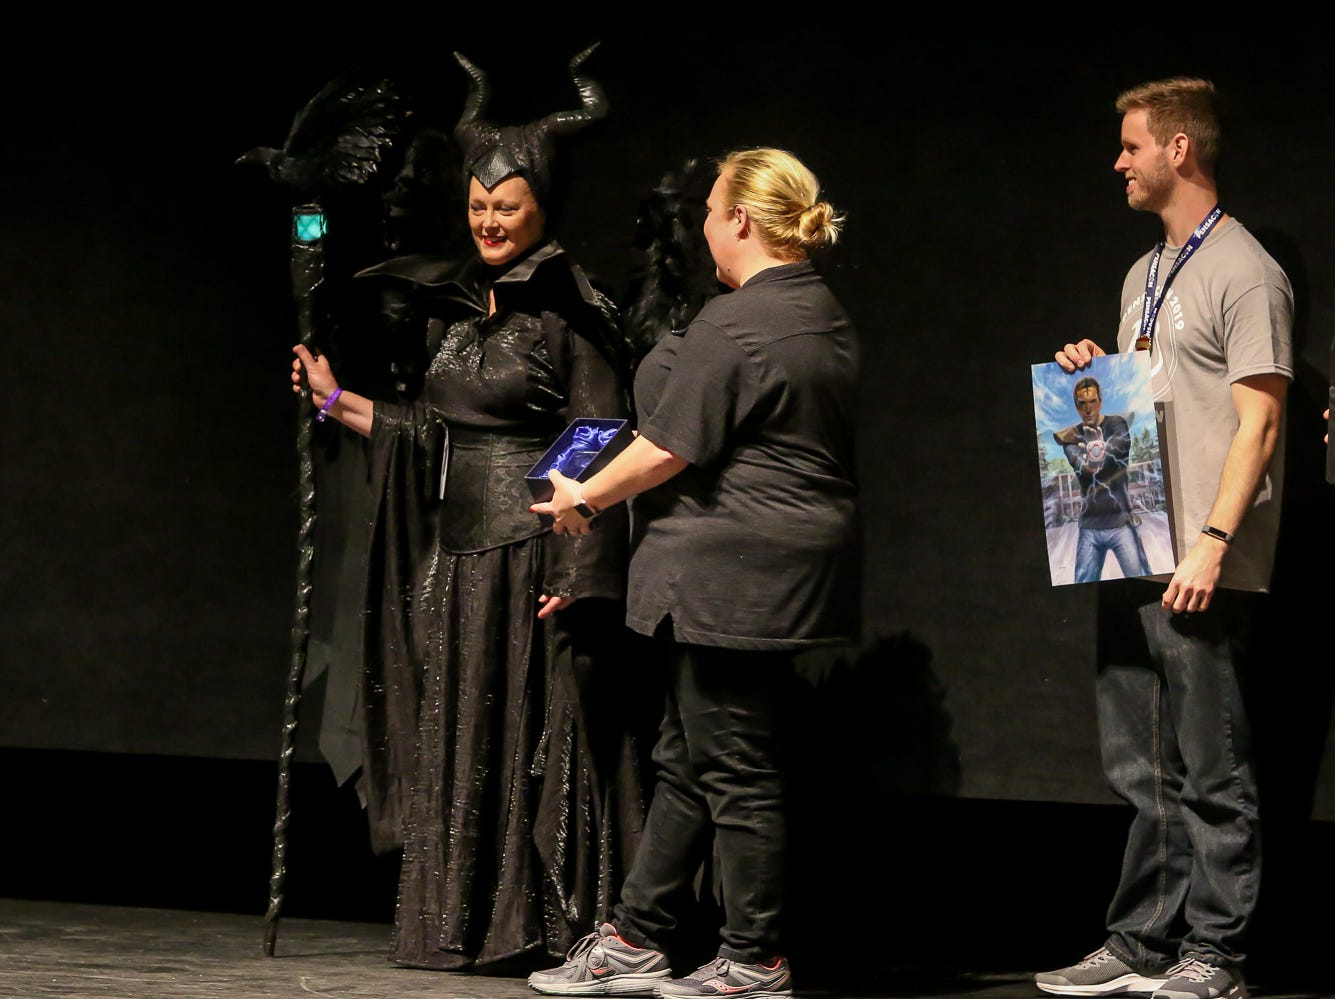 The first place winner in the Journeyman Division of the Pensacon cosplay contest presented by McGuire's Irish Pub at the Saenger Theatre on Saturday, February 23, 2019.